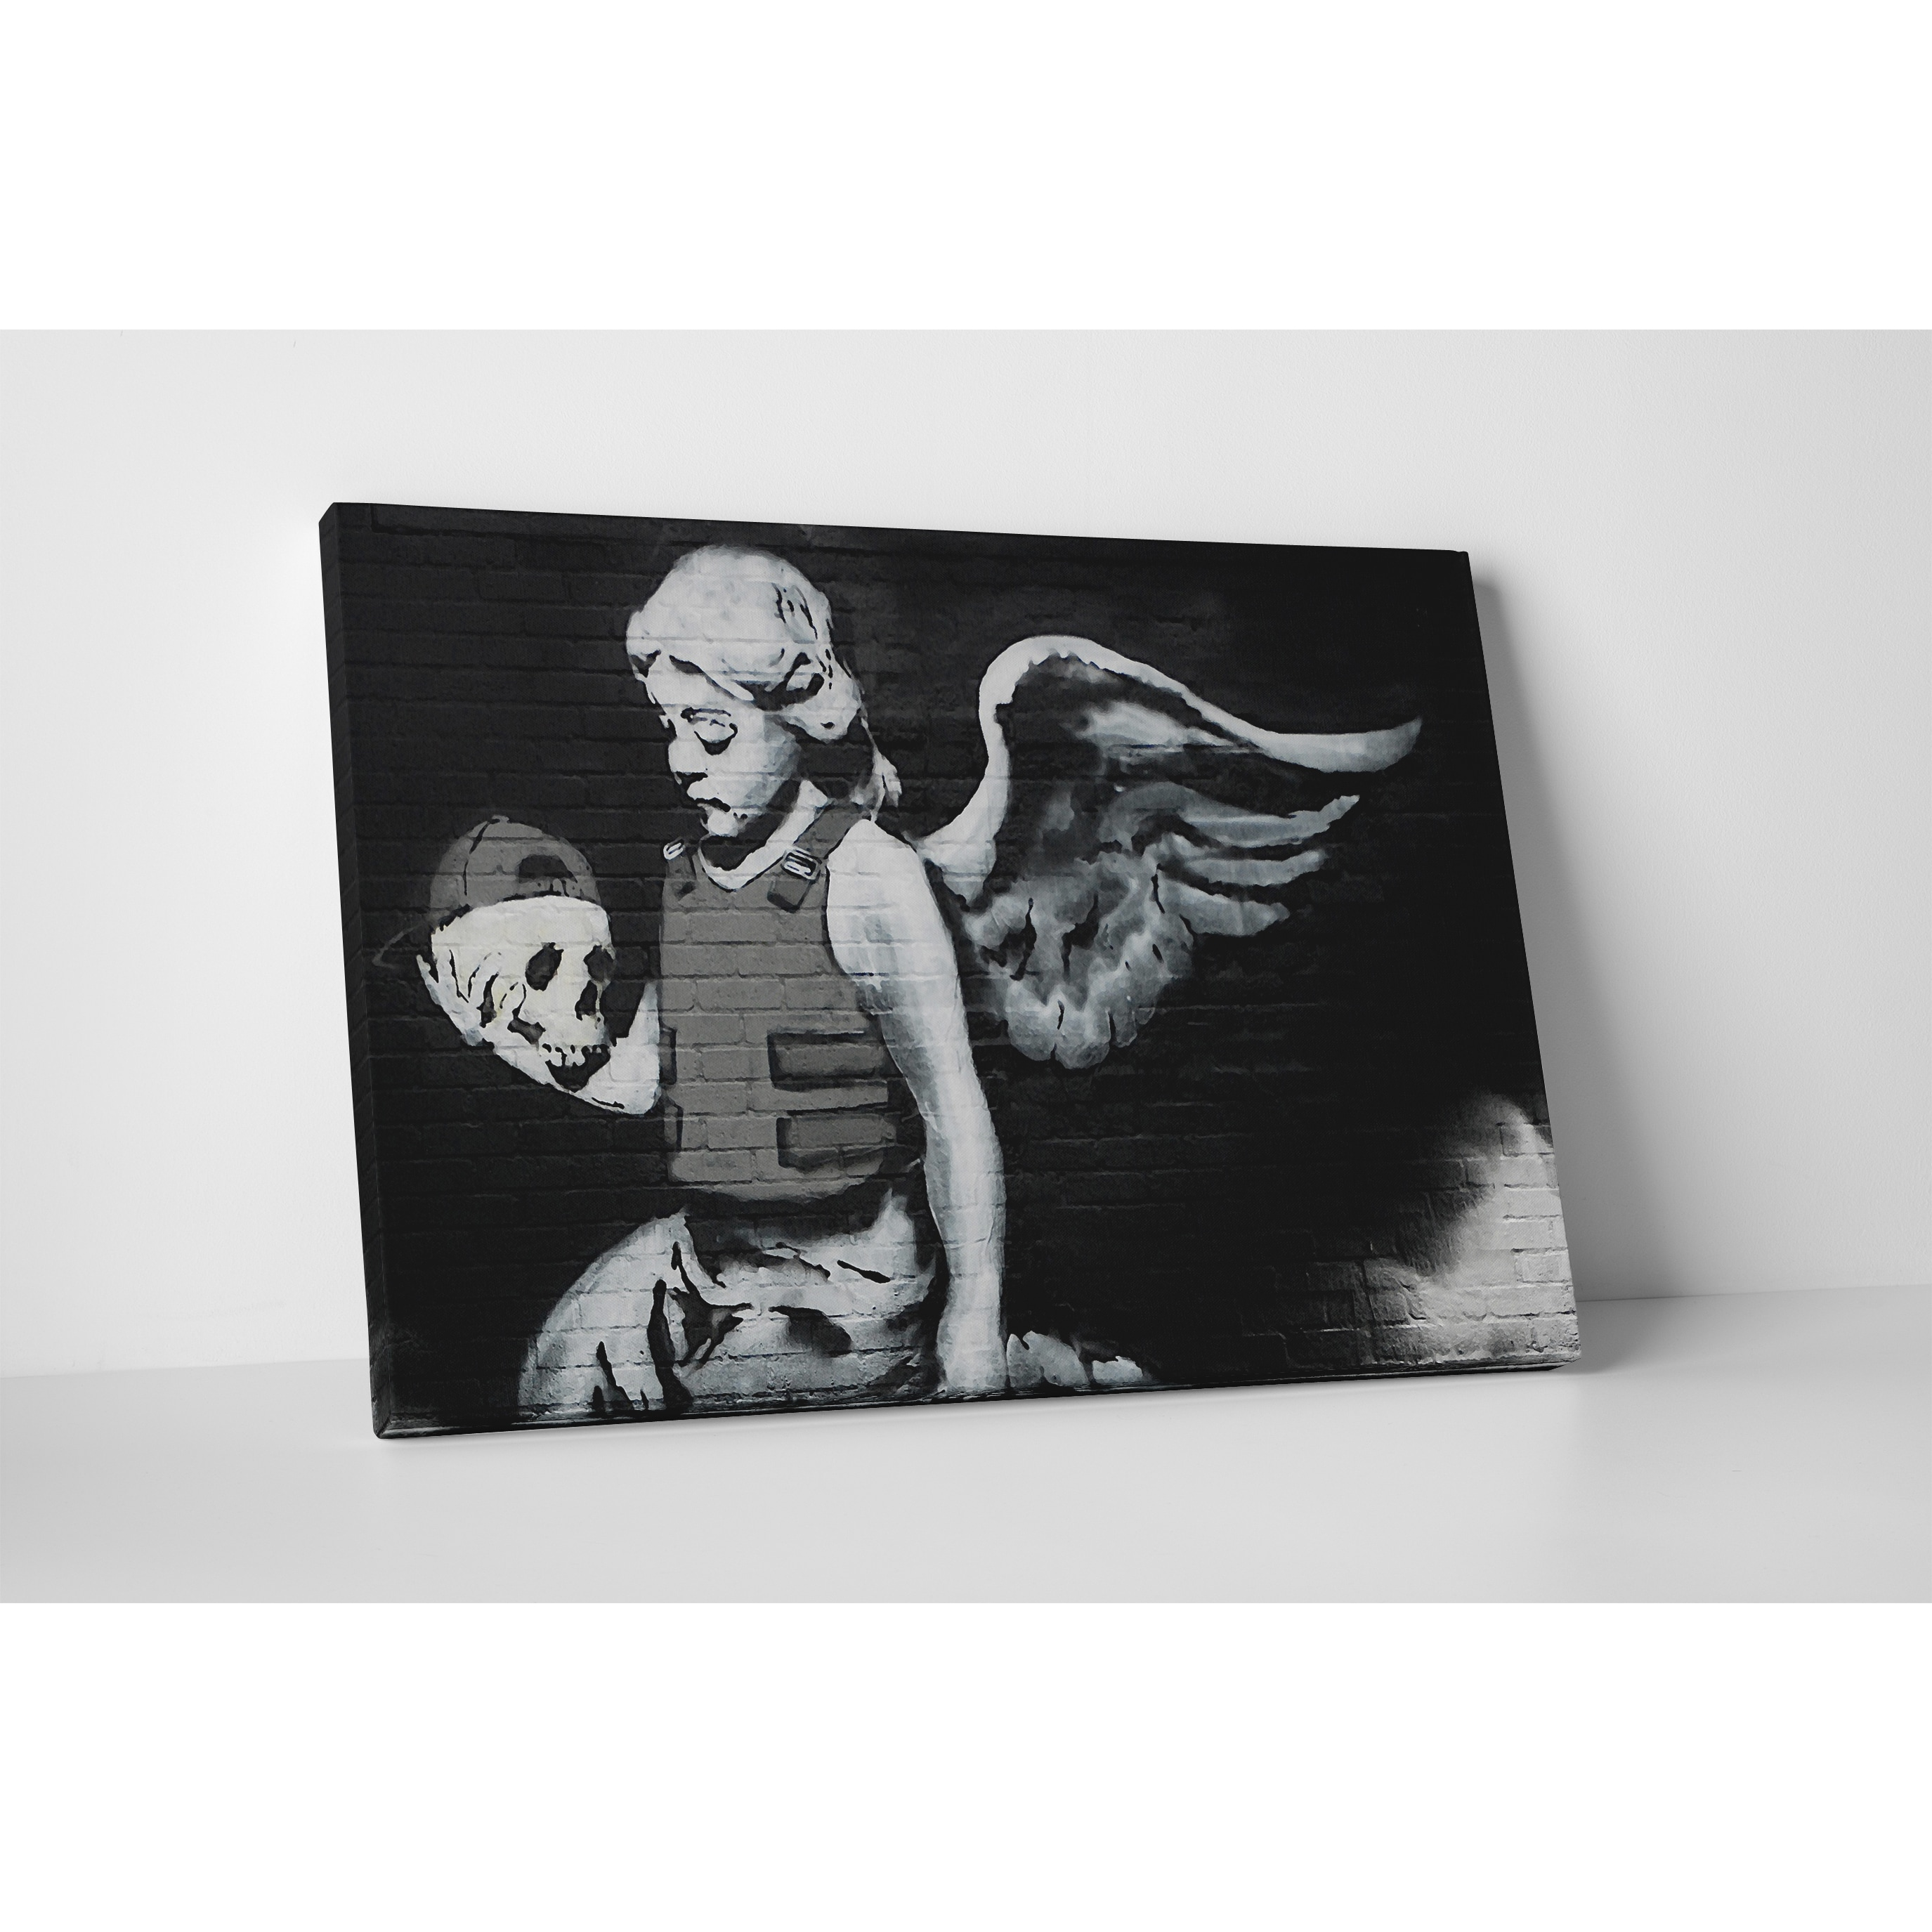 Banksy 'Body Armor Angel with Skull' Gallery Wrapped Canv...